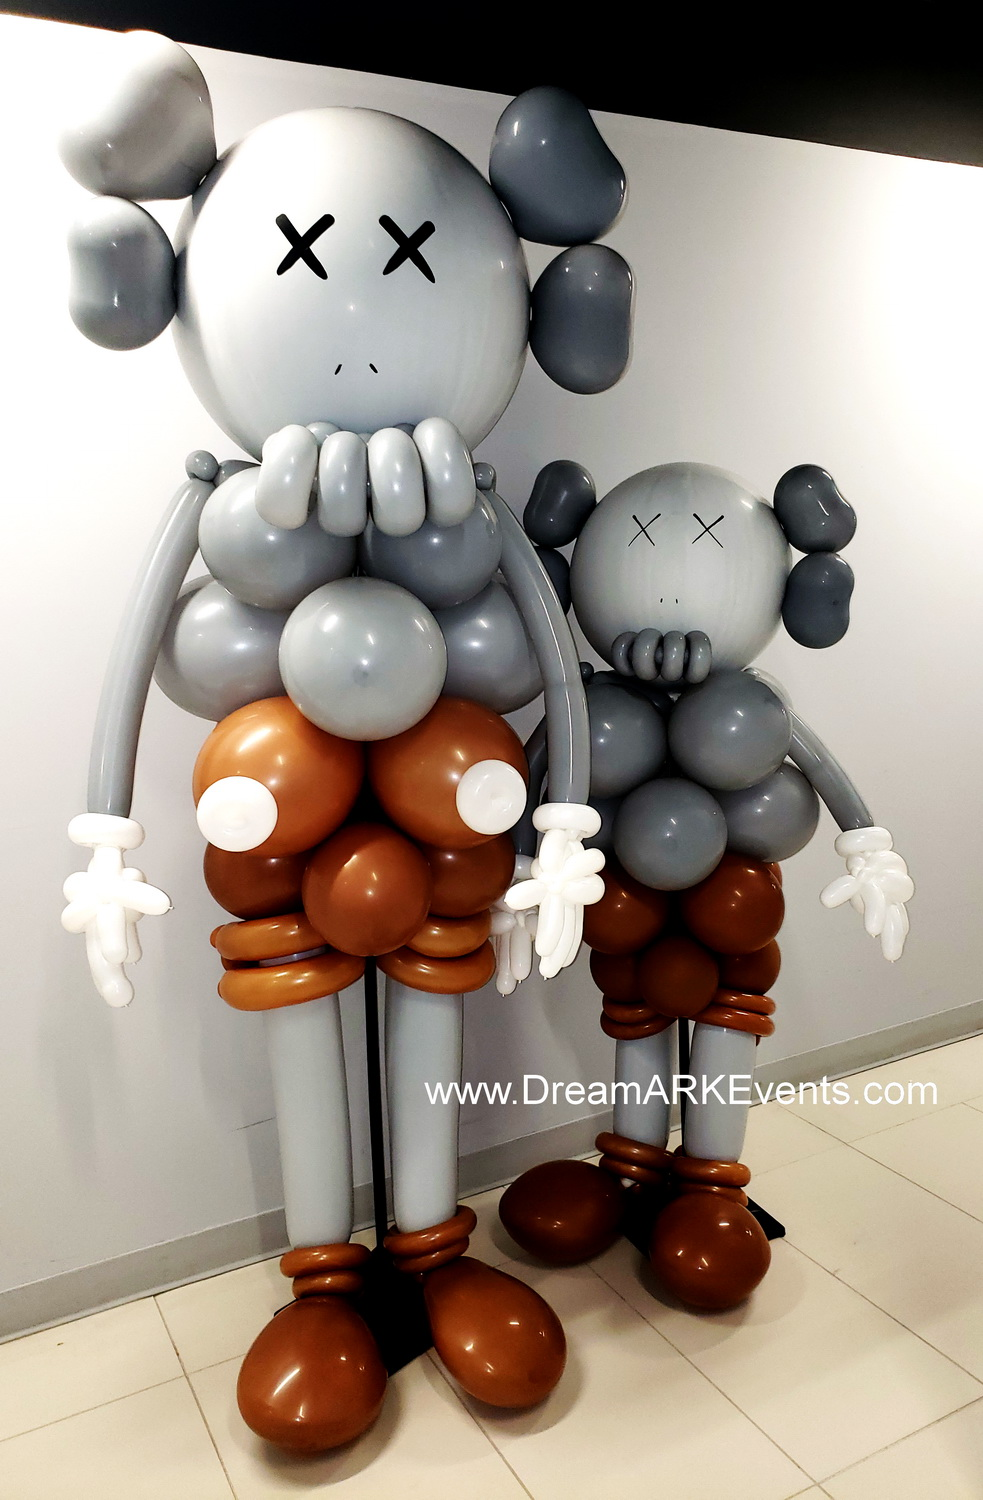 Kaws balloon sculpture